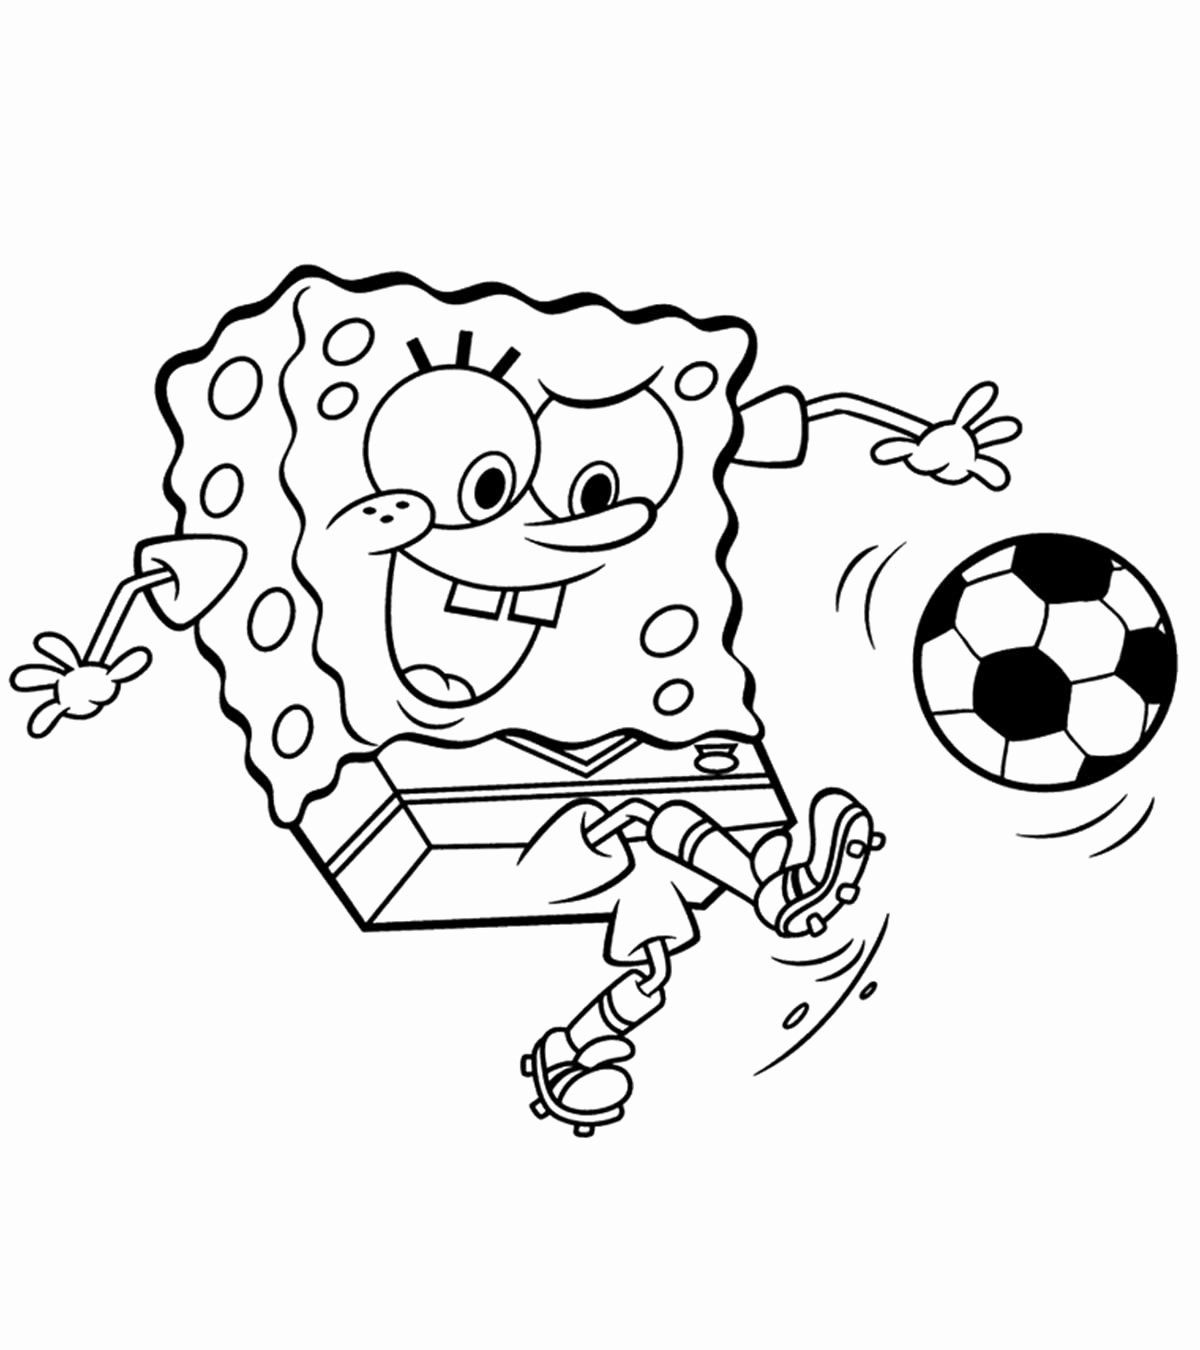 Soccer Girl Coloring Page Beautiful Page 154 Handistory Football Coloring Pages Spongebob Coloring Coloring Pages